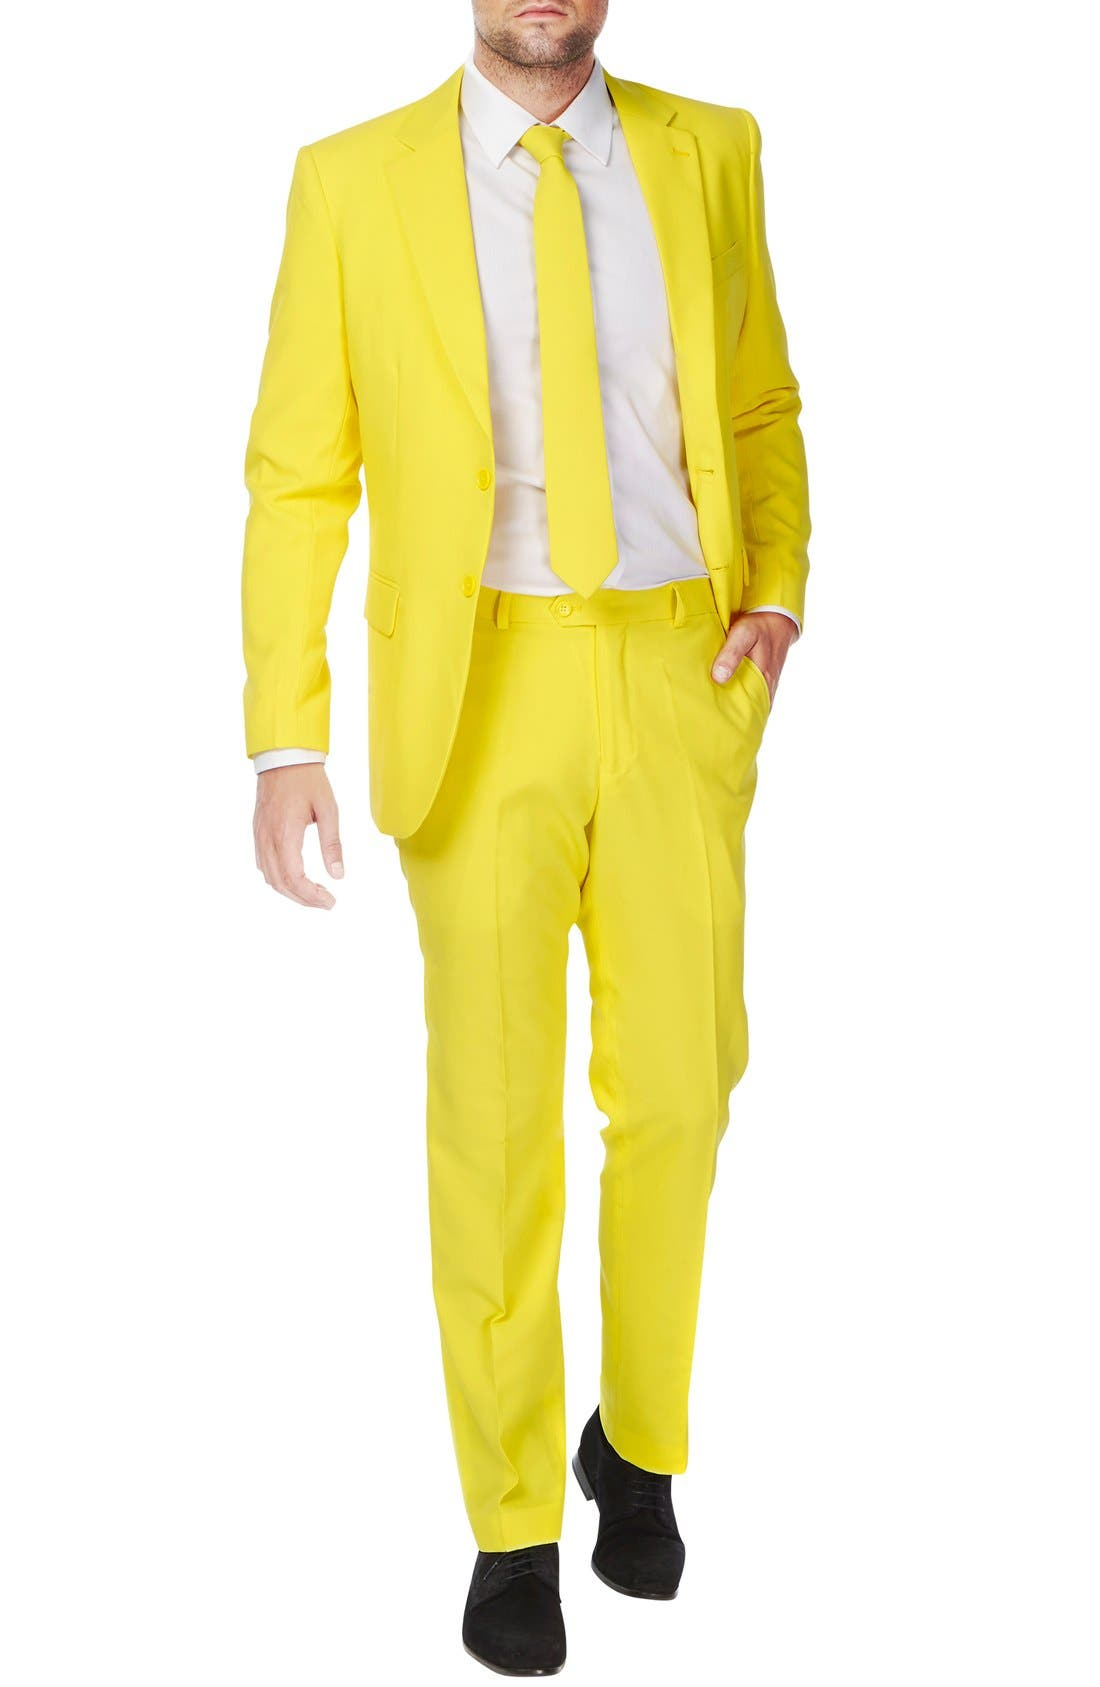 Main Image - OppoSuits 'Yellow Fellow' Trim Fit Two-Piece Suit with Tie